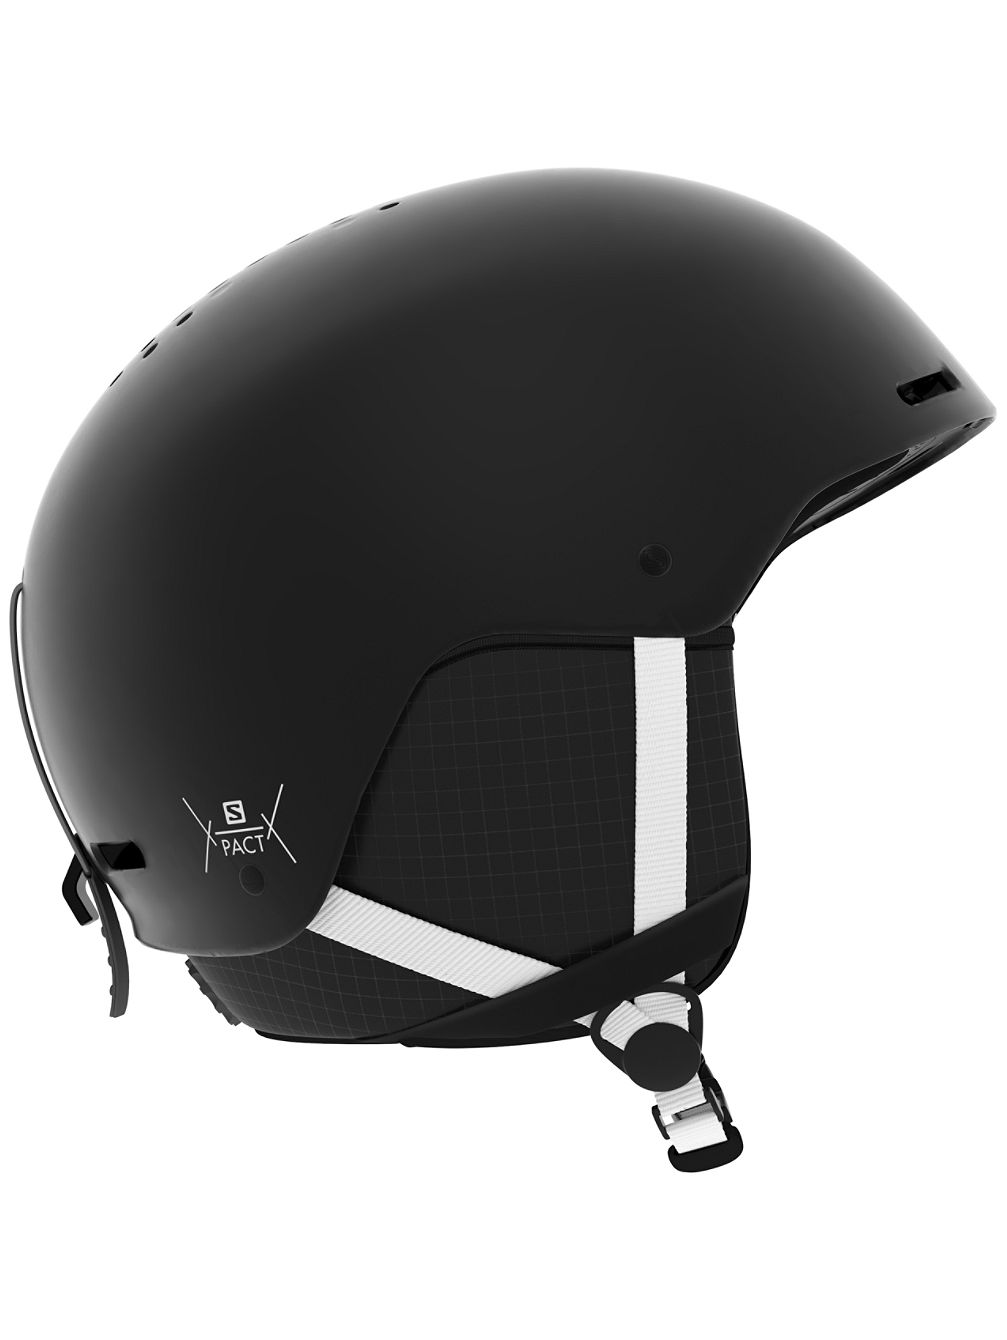 Pact Snowboard Helmet Youth Youth